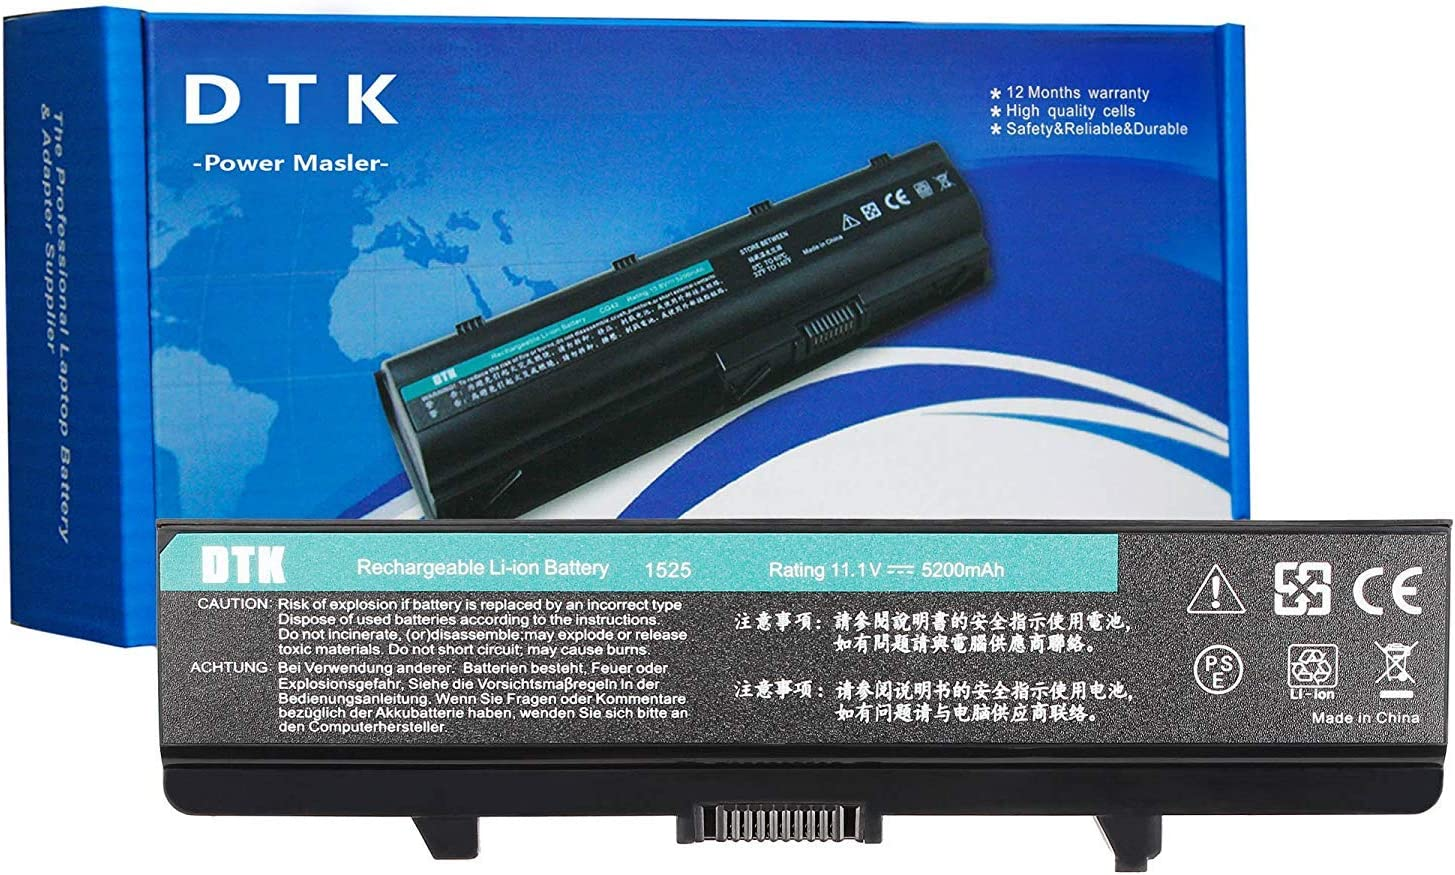 Dtk Laptop Battery for Dell Inspiron 1525 1526 1545 1546 1440 1750 Vostro 500 K450n [ 6-Cell 11.1v 5200mah] Notebook PC Battery